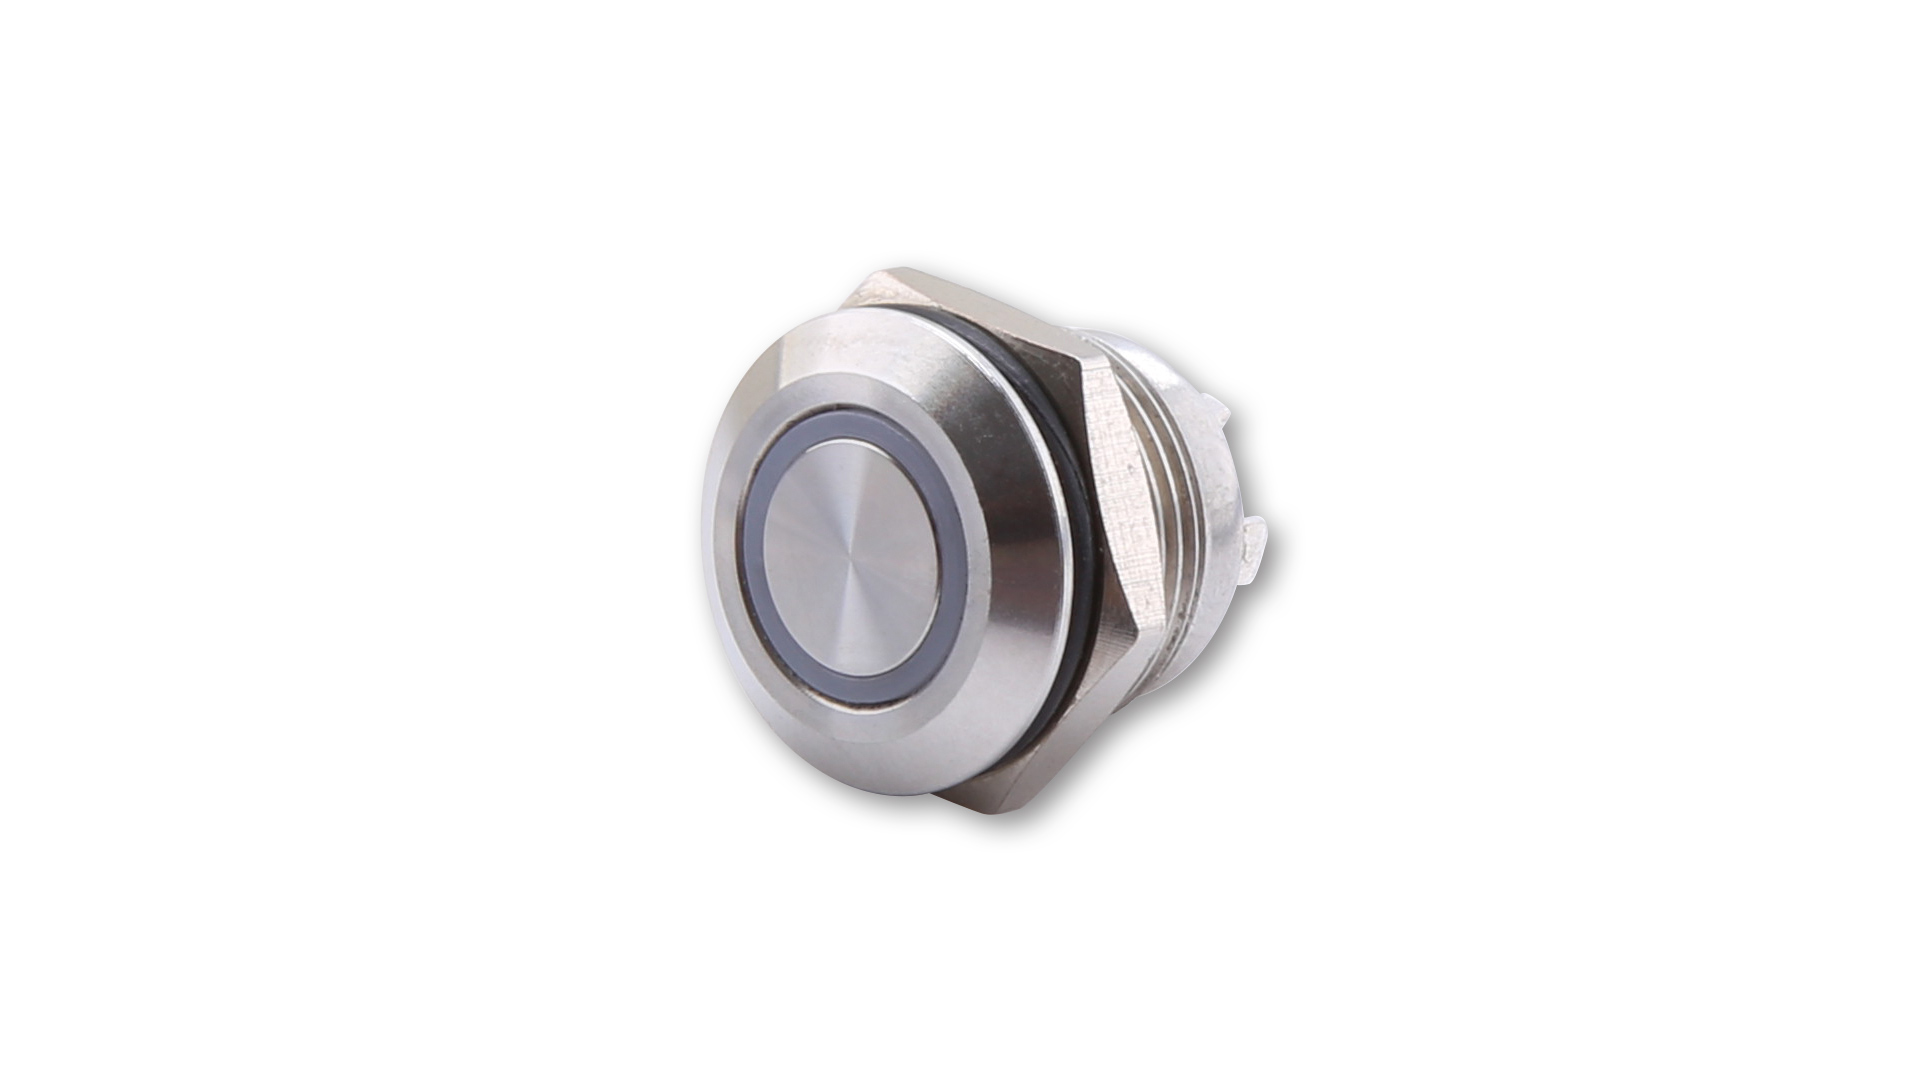 Push Button Stainless Steel With Led Light Ring